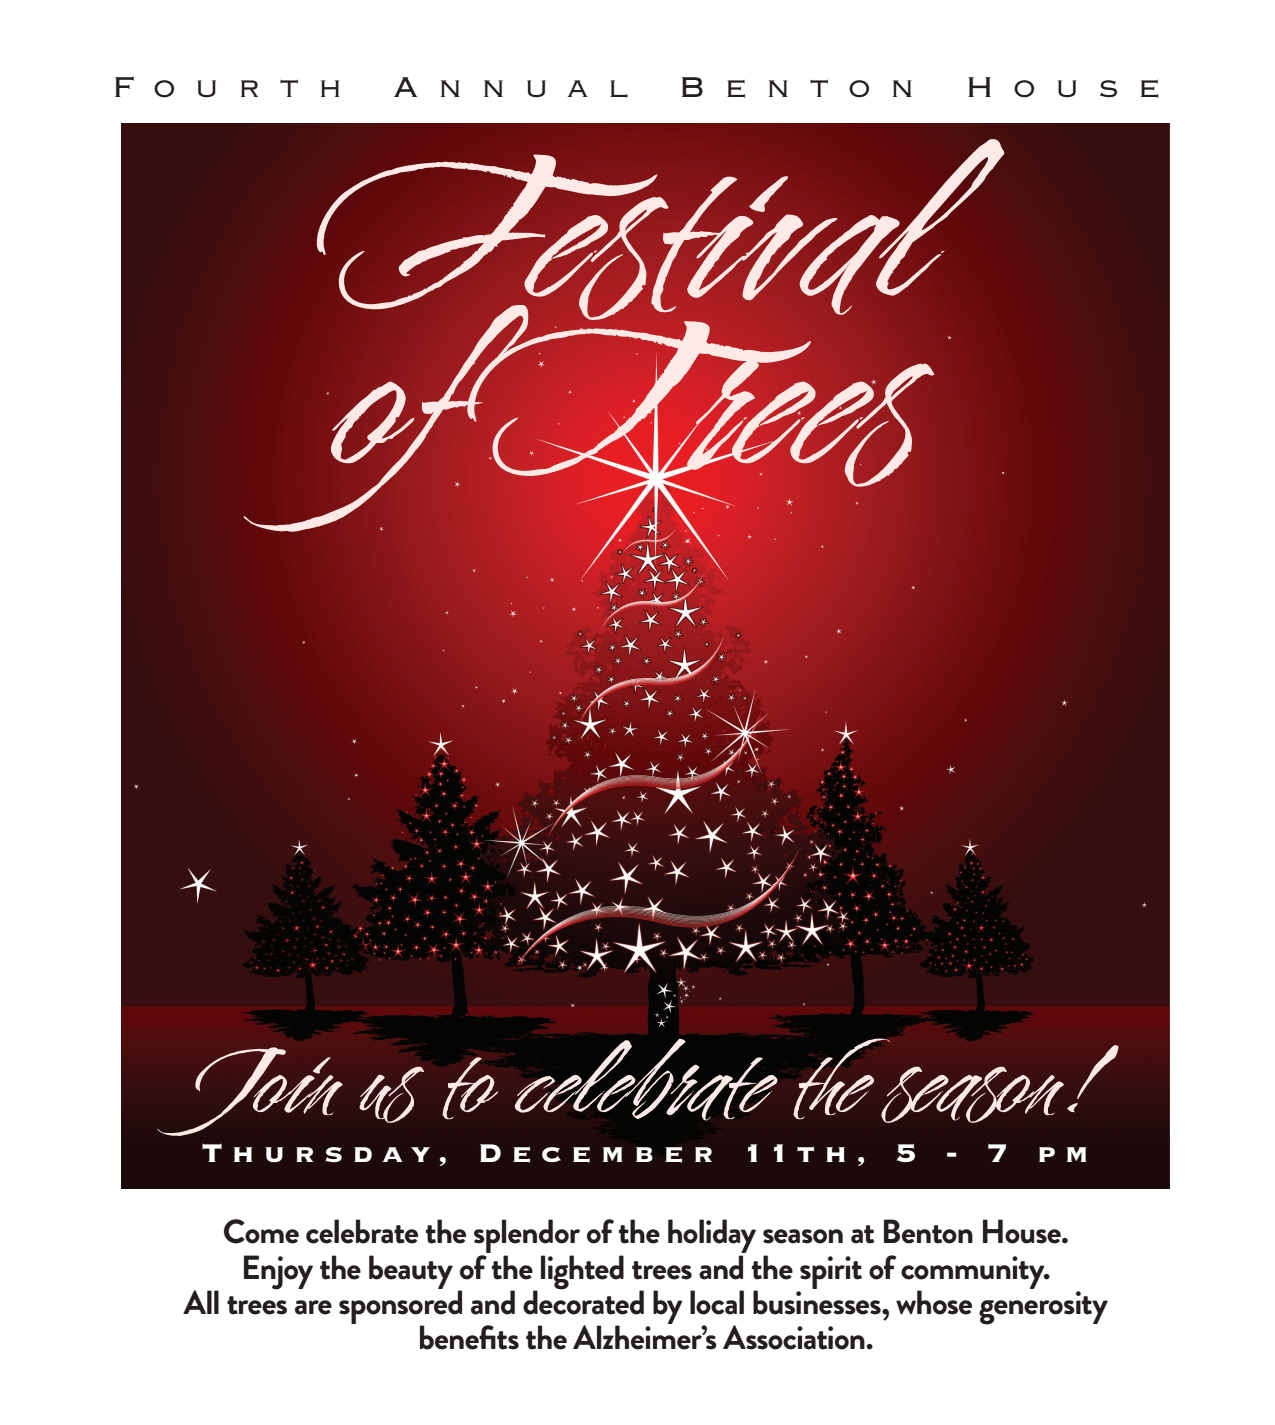 Festival of Trees - activities at Benton House of Staley Hills in Kansas City, MO